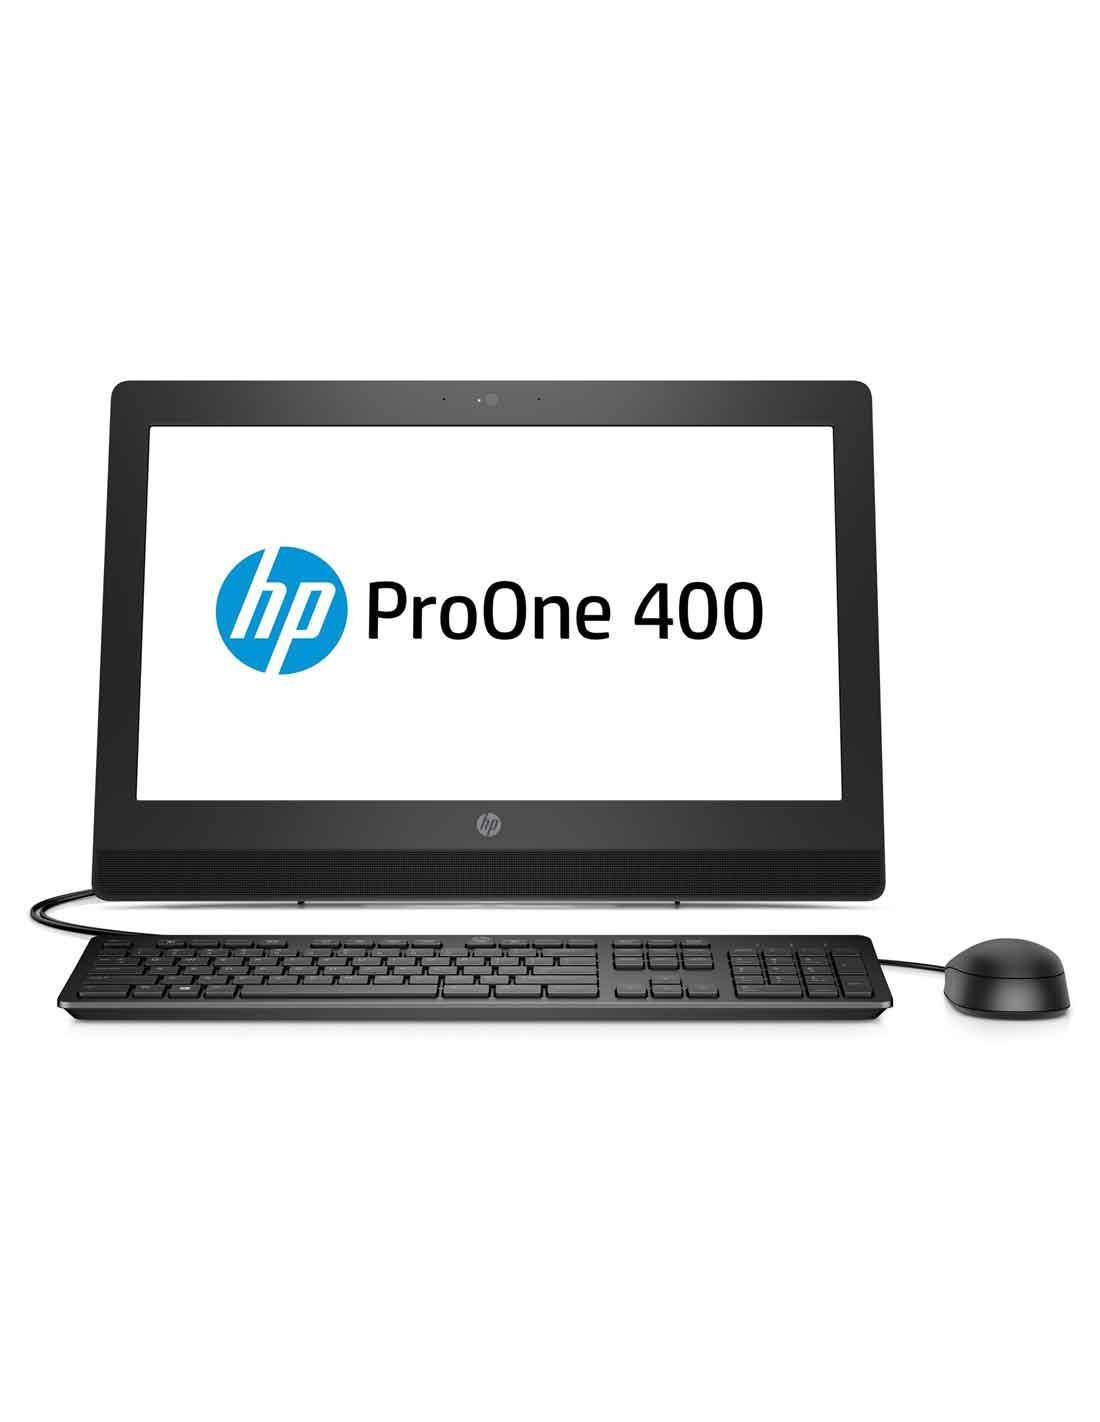 HP ProOne 400 G3 All-in-One Intel Core i5 4GB memory images